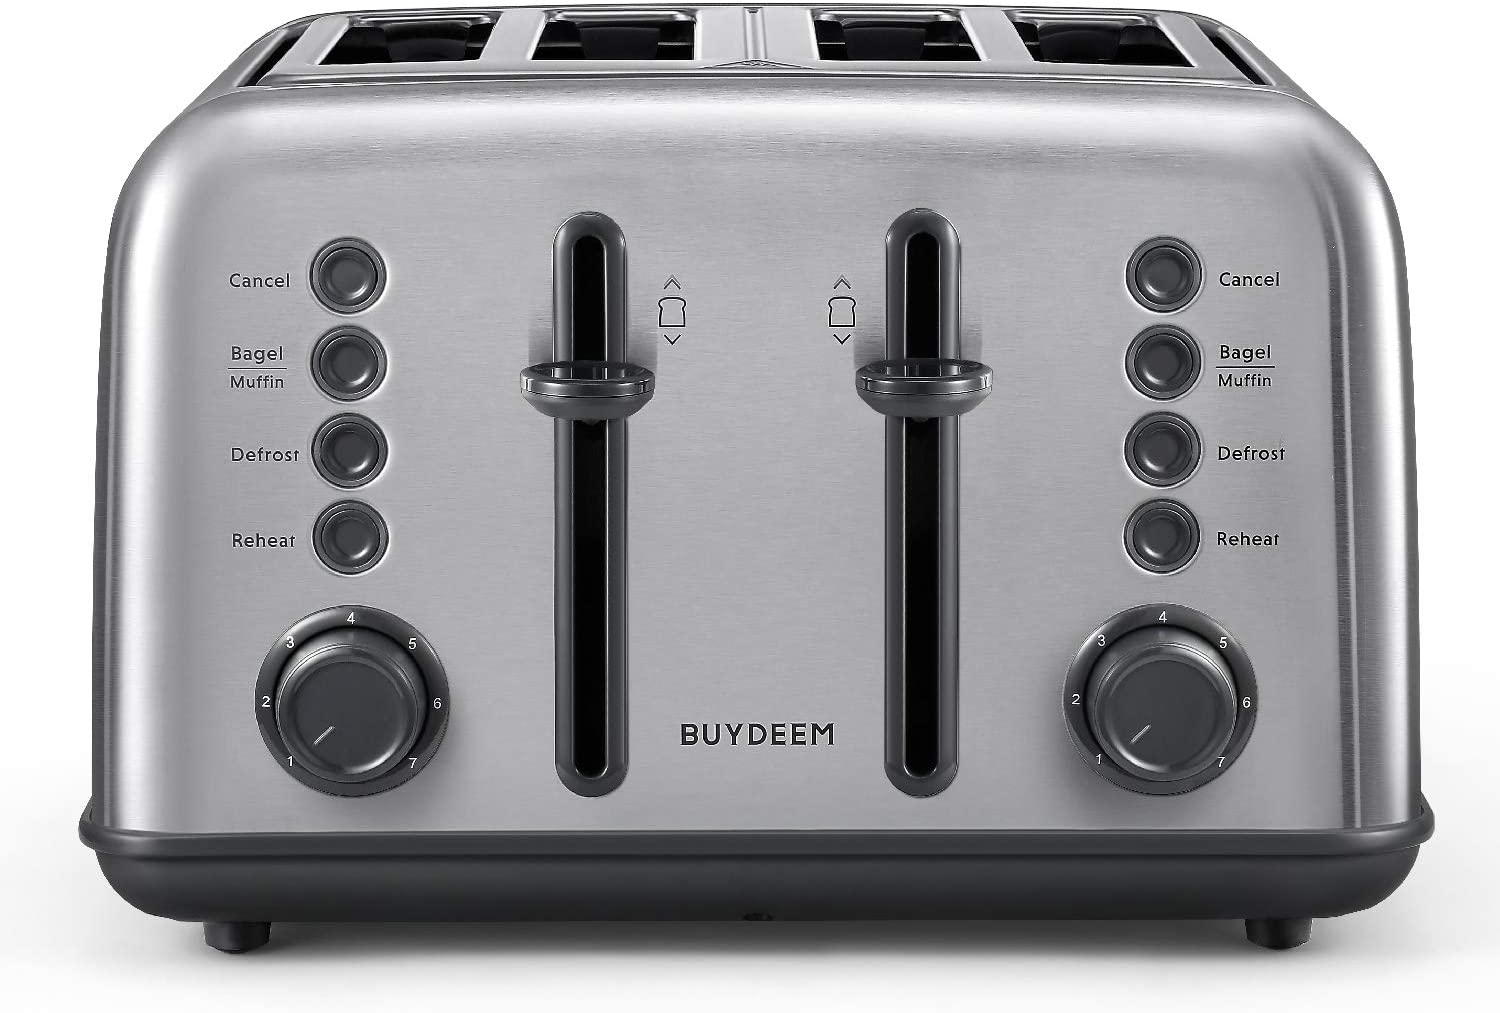 BUYDEEM DT-6B83 4-Slice Toaster, Extra Wide Slots, Retro Stainless Steel with High Lift Lever, Bagel and Muffin Function, Removal Crumb Tray, 7-Shade Settings (Retro Stainless Steel)